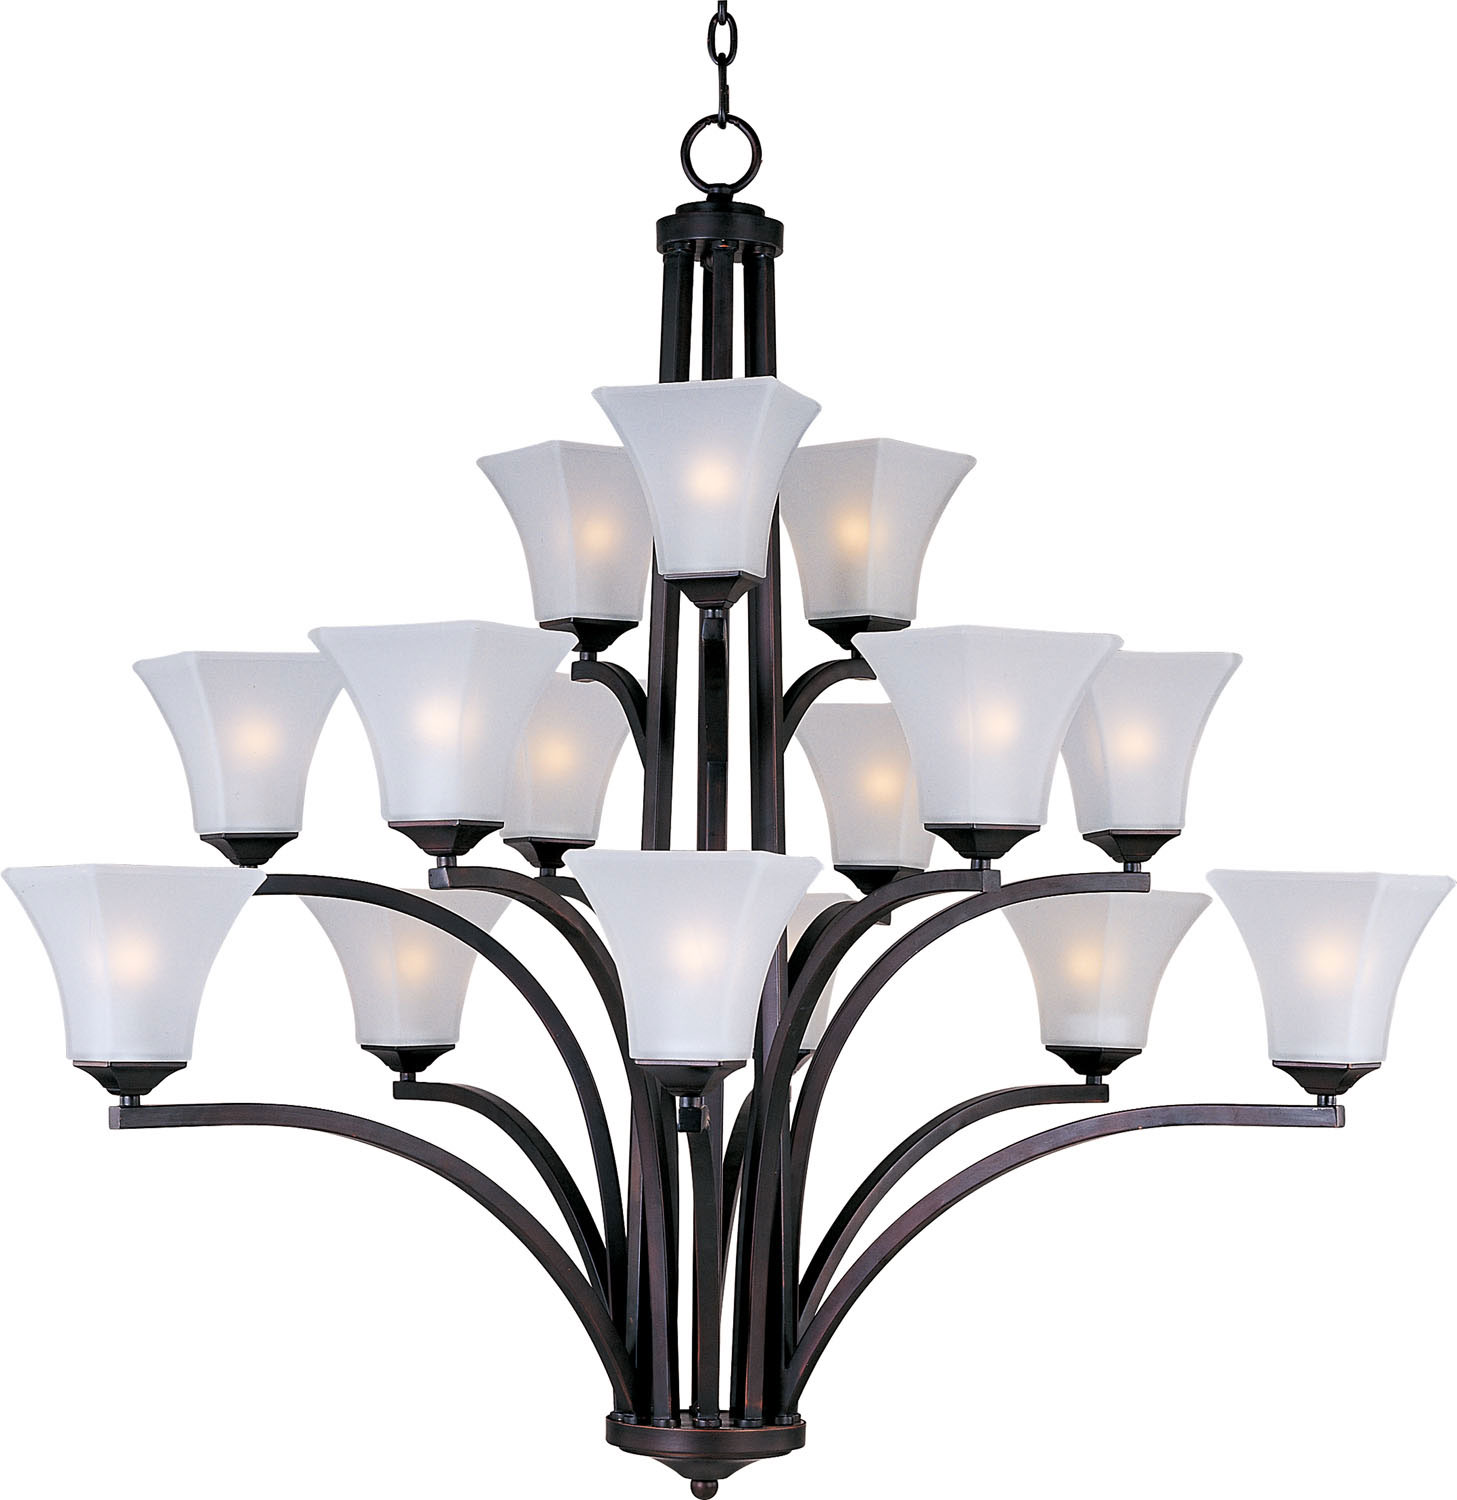 15 Light Chandelier from the Aurora collection by Maxim 20097FTOI